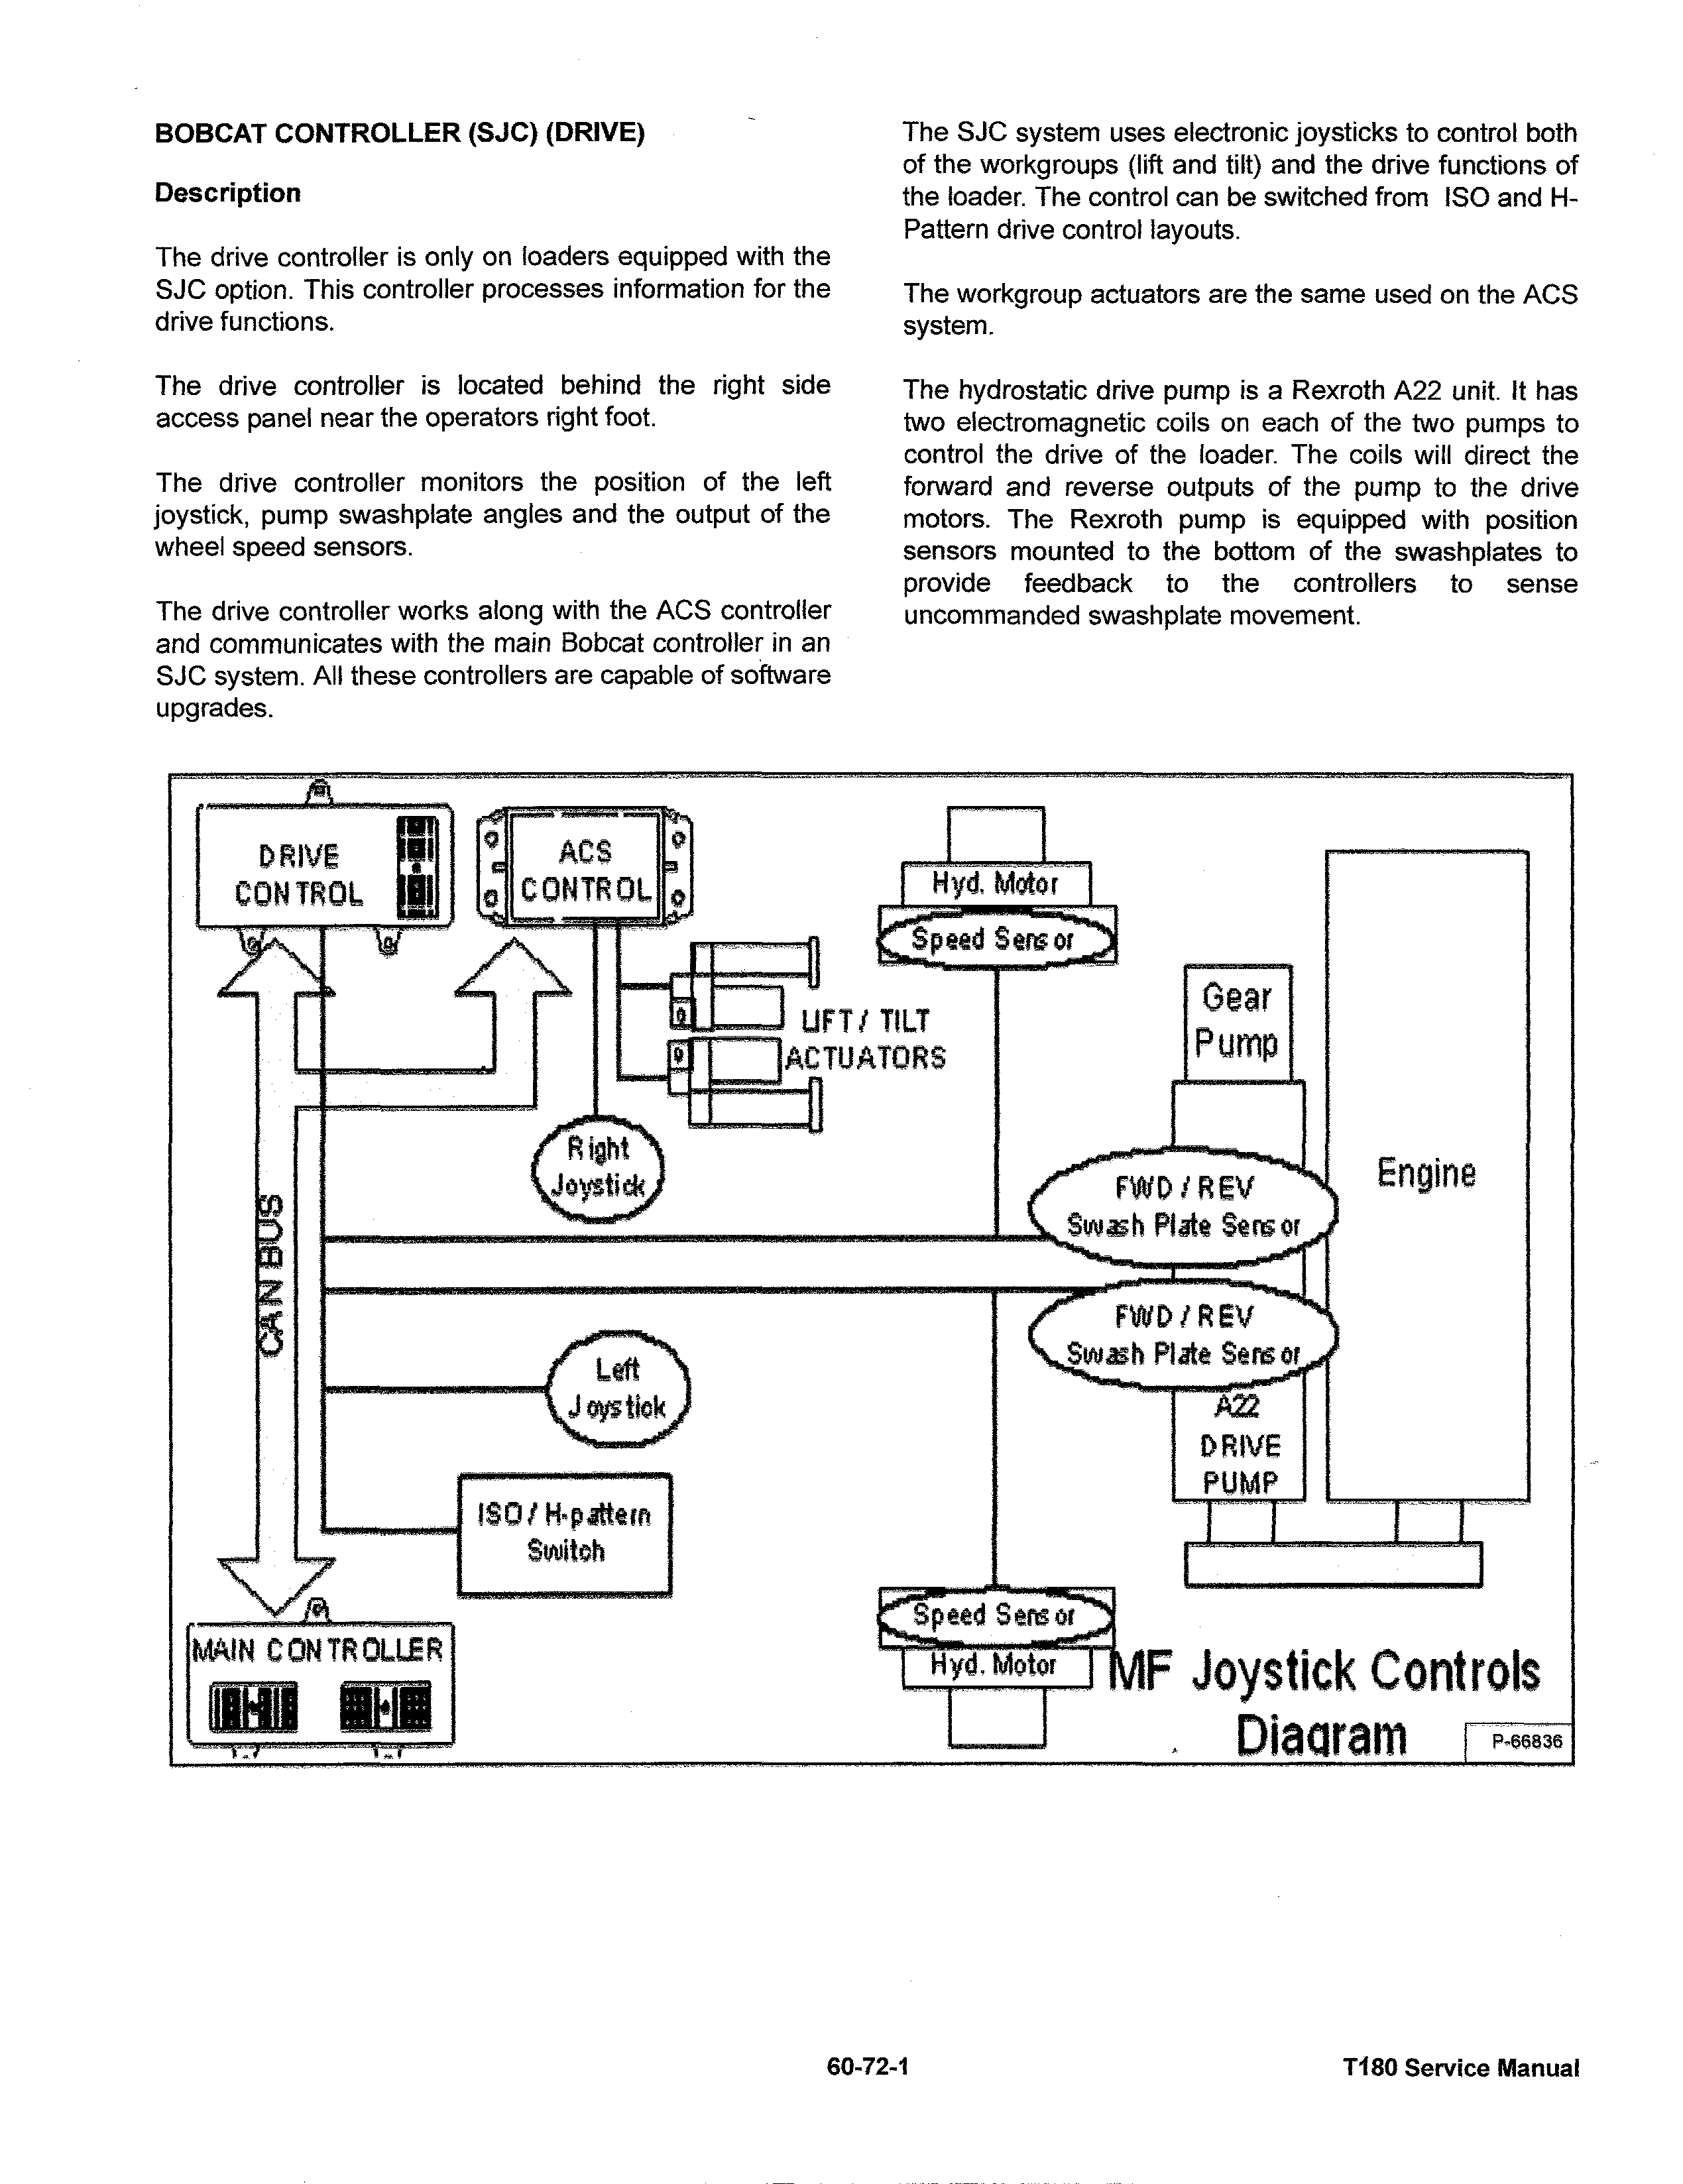 2014 01 12 004230 bobcat controller sjc png 7 pin wiring diagram fisher 7 printable wiring diagram database bobcat 7